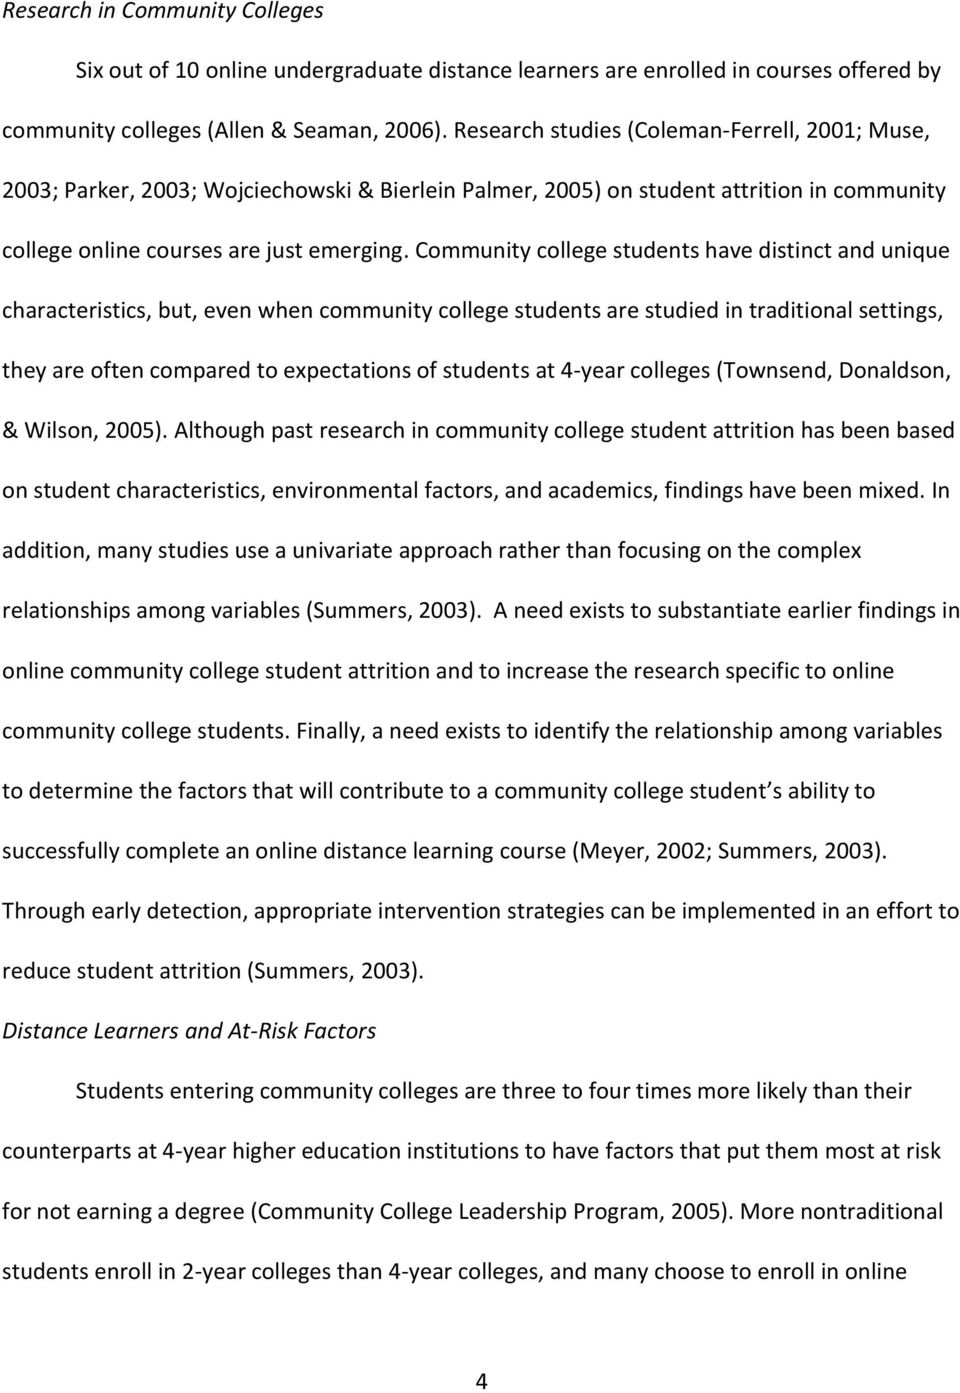 Community college students have distinct and unique characteristics, but, even when community college students are studied in traditional settings, they are often compared to expectations of students